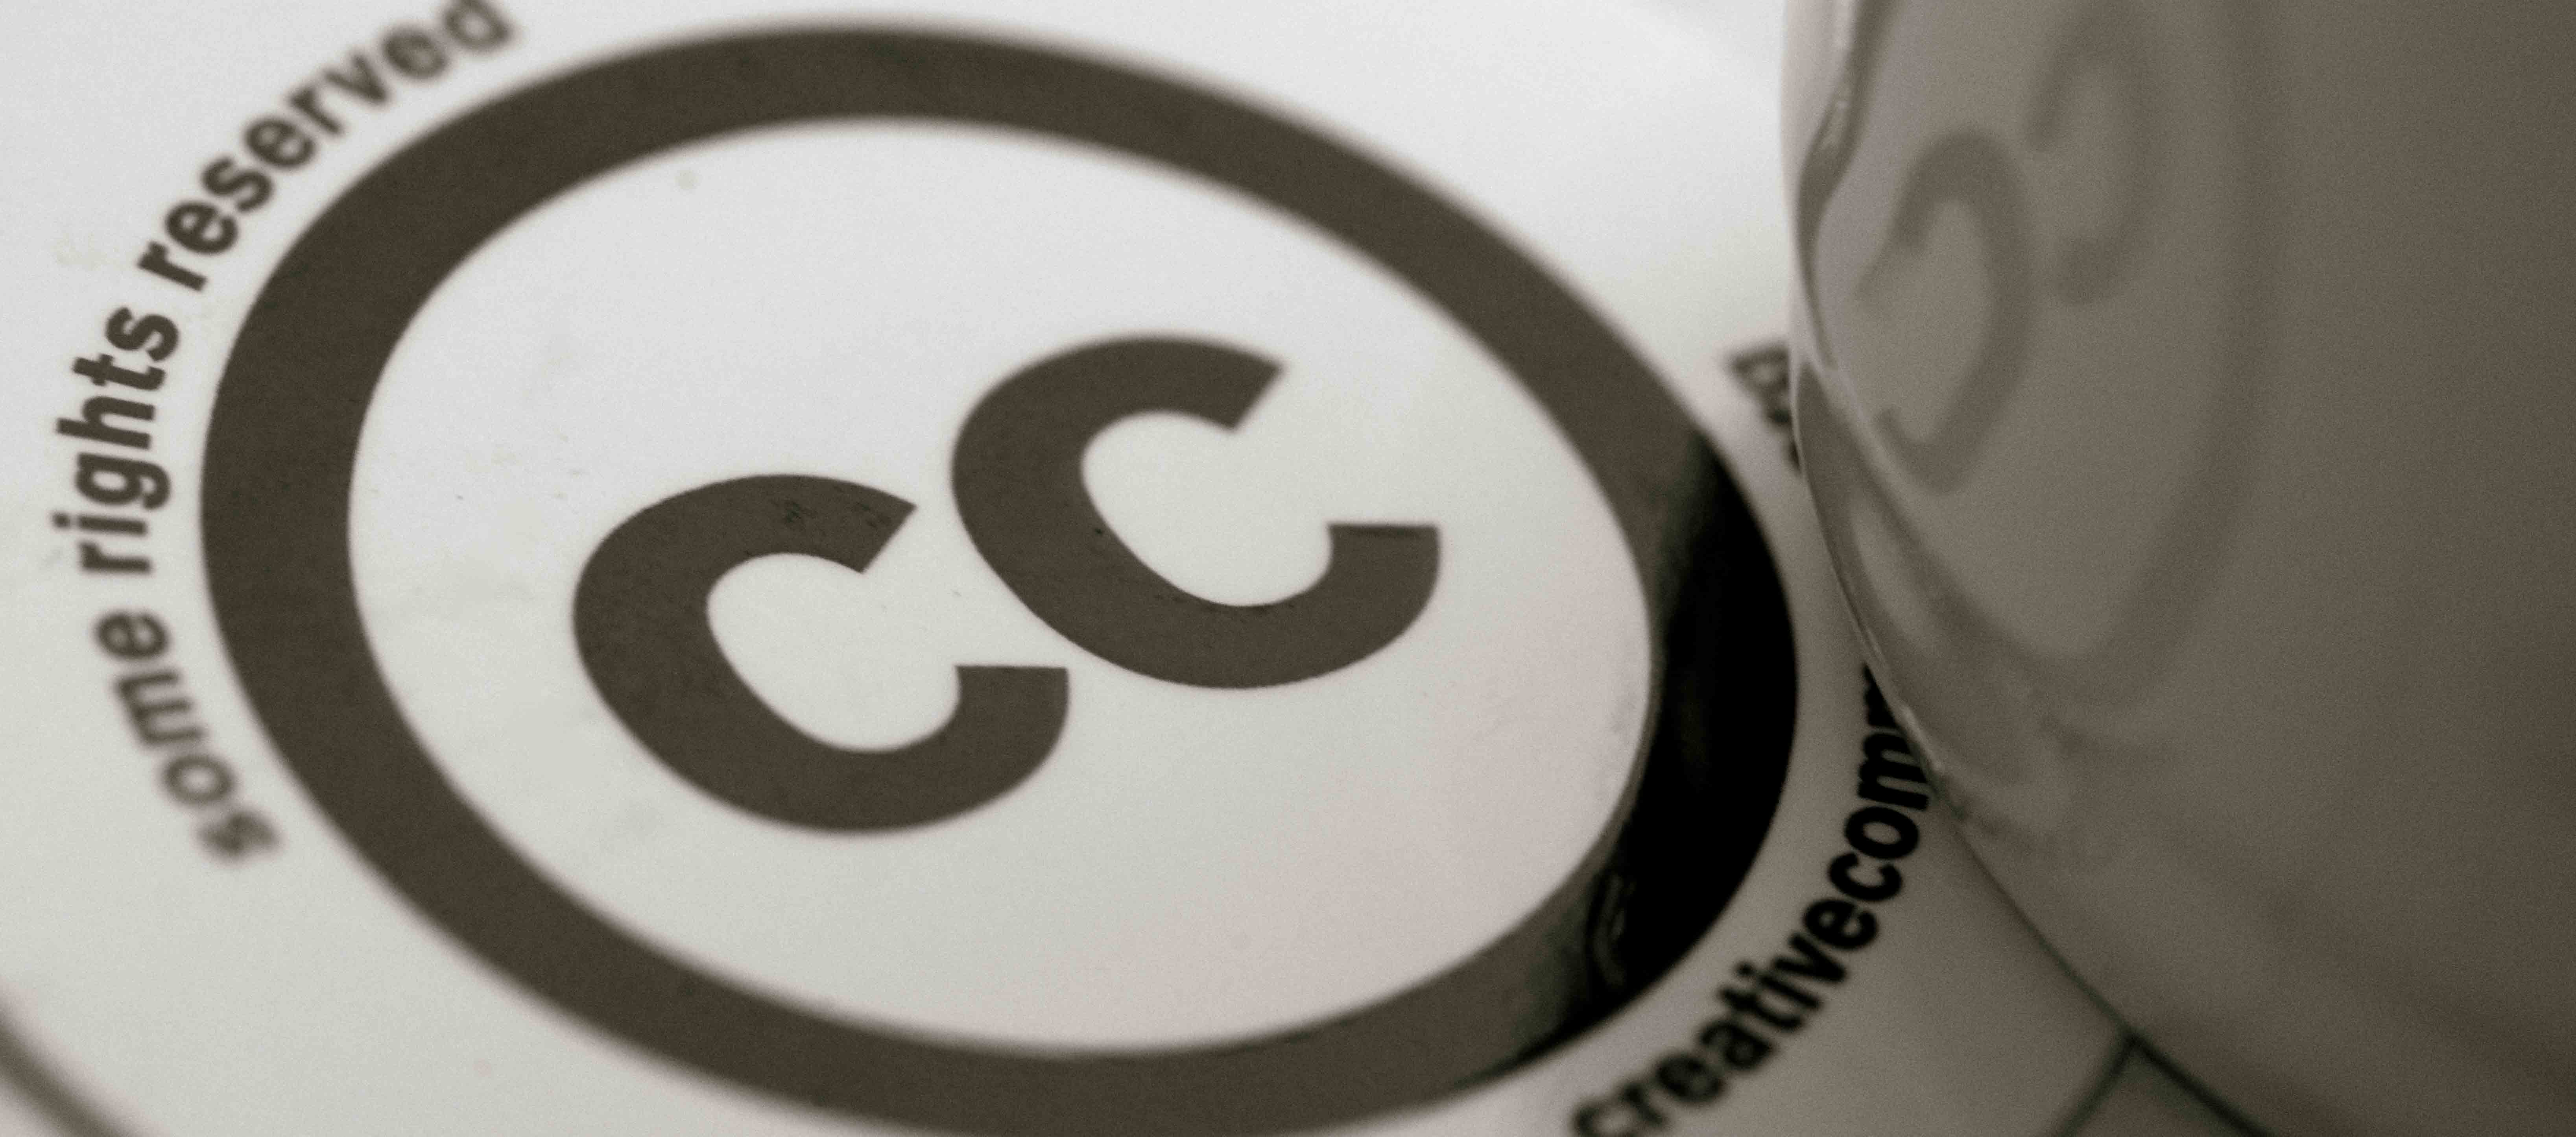 creative commons cc search - 1024×512